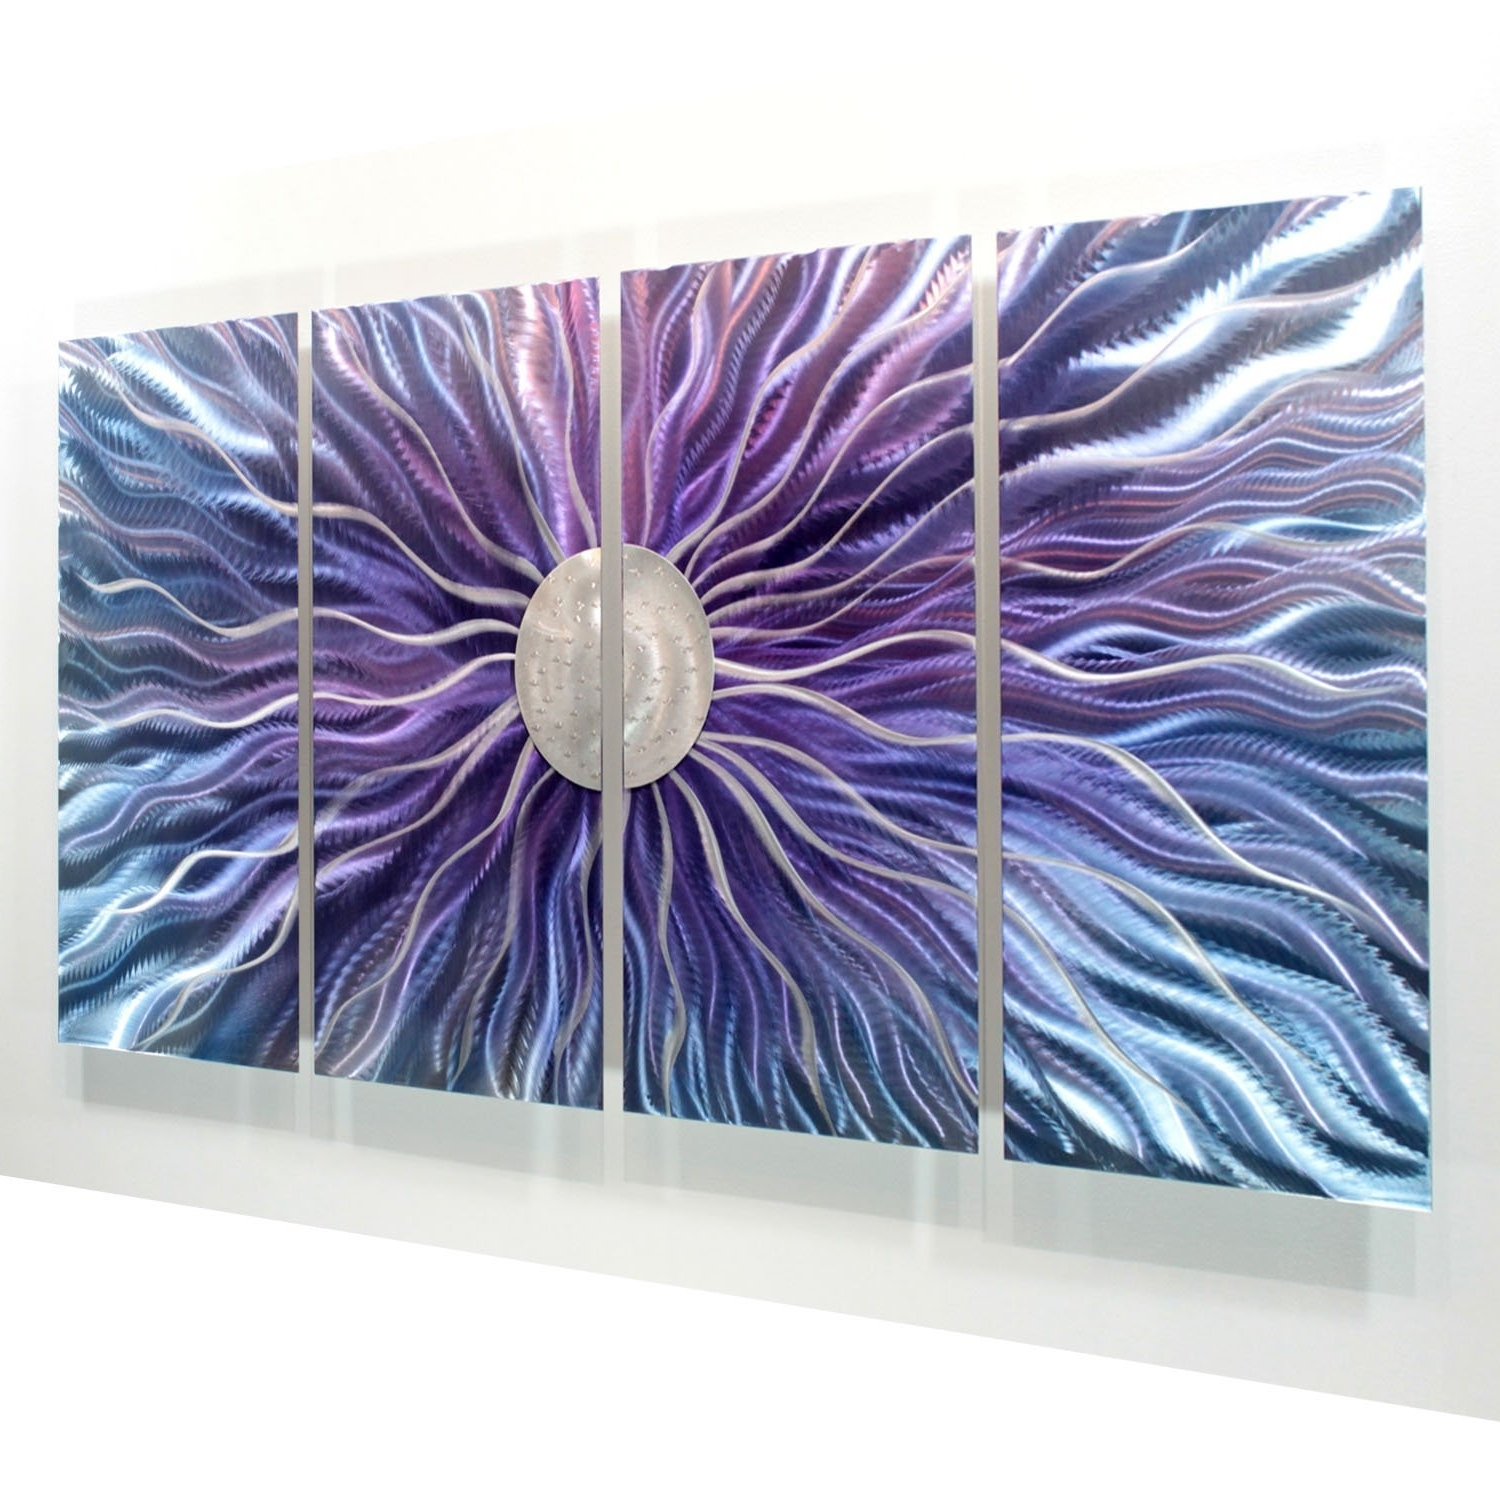 Contemporary Metal Wall Art Sculpture Throughout Most Up To Date Amazon: Large Blue, Purple, And Silver Metal Wall Art Painting (View 13 of 15)